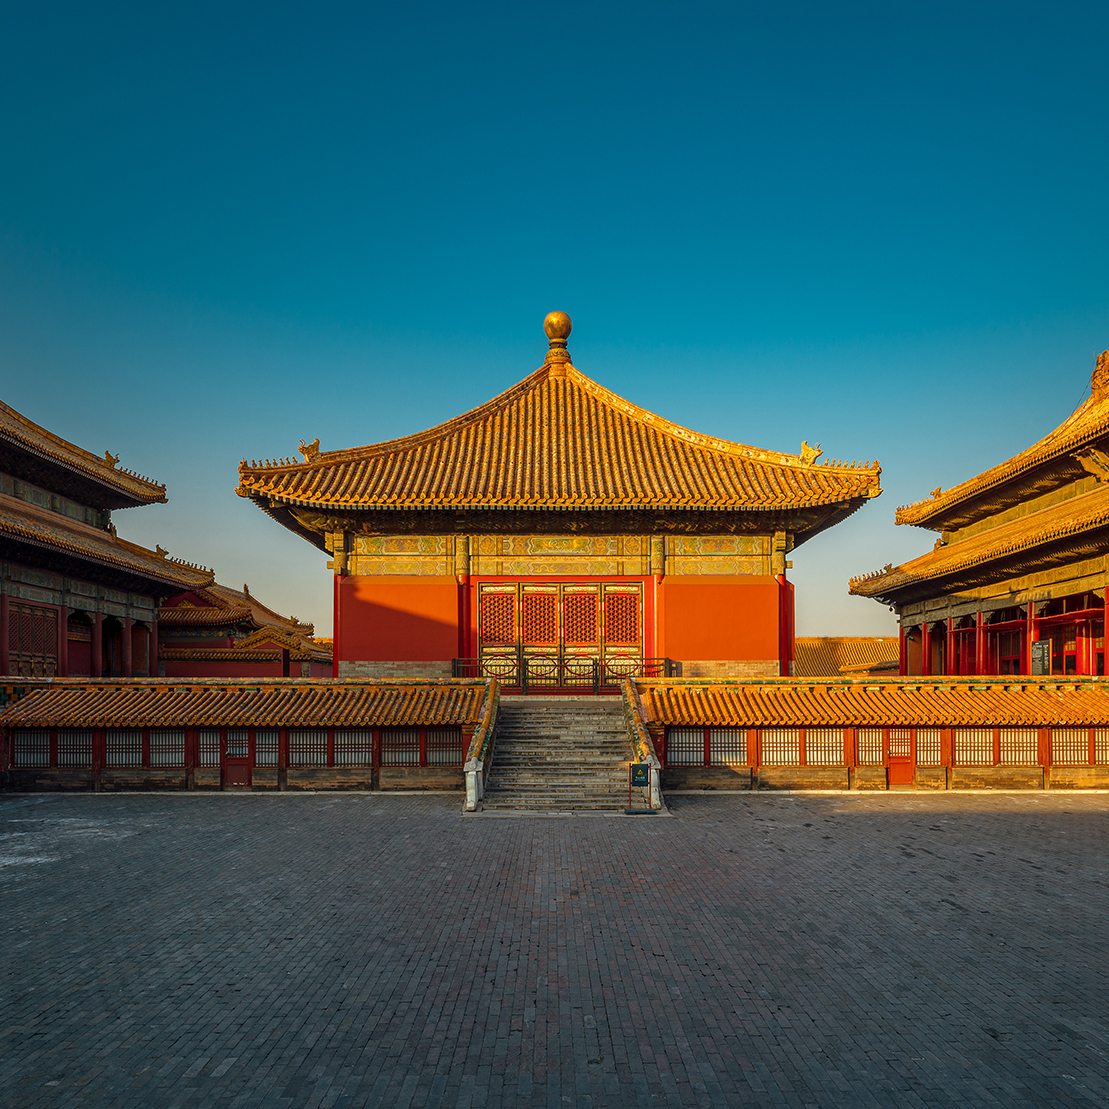 SU TANGSHI | THE ENDLESS BEAUTY OF THE FORBIDDEN CITY